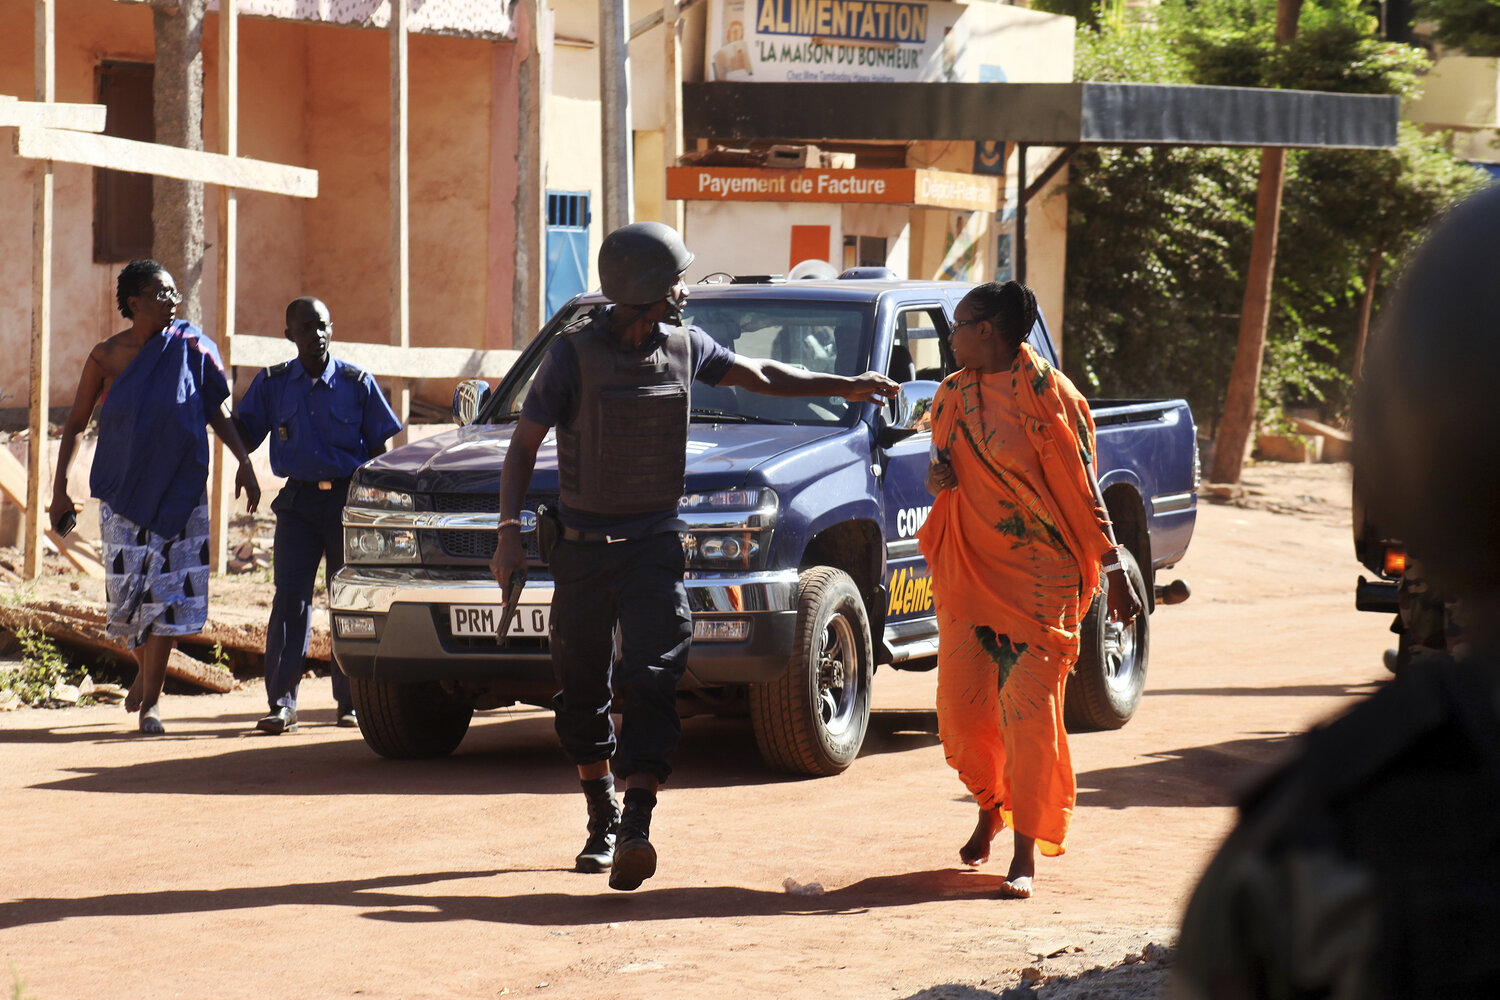 Security forces evacuate two women near the Radisson Blu. (Habibou Kouyate/AFP/Getty Images)